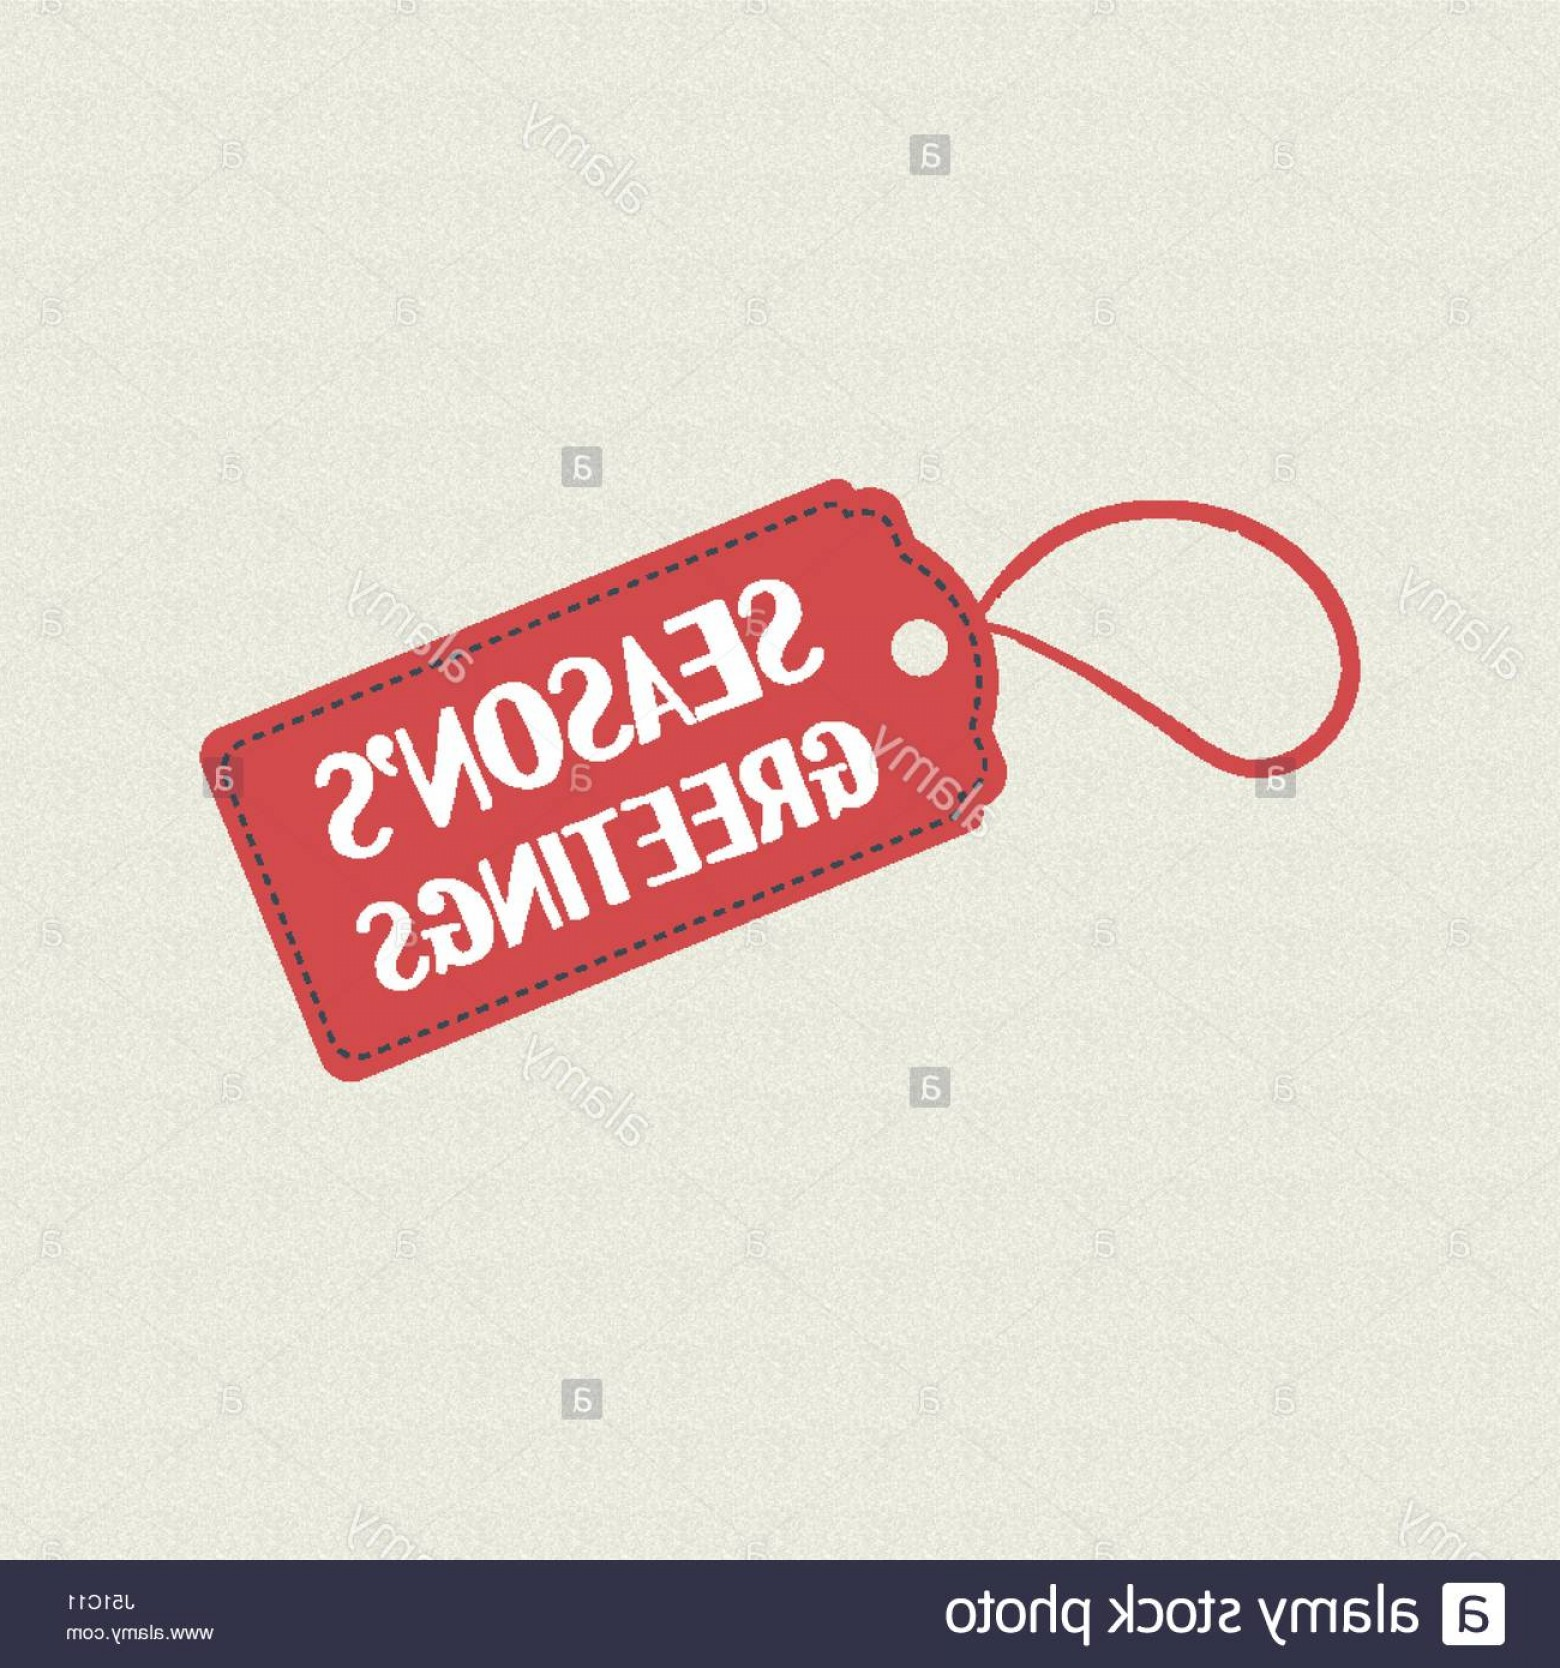 Vintage Xmas Sale Tag Vector: Stock Photo Merry Christmas Season Greetings Quote On Holiday Sale Label Vintage